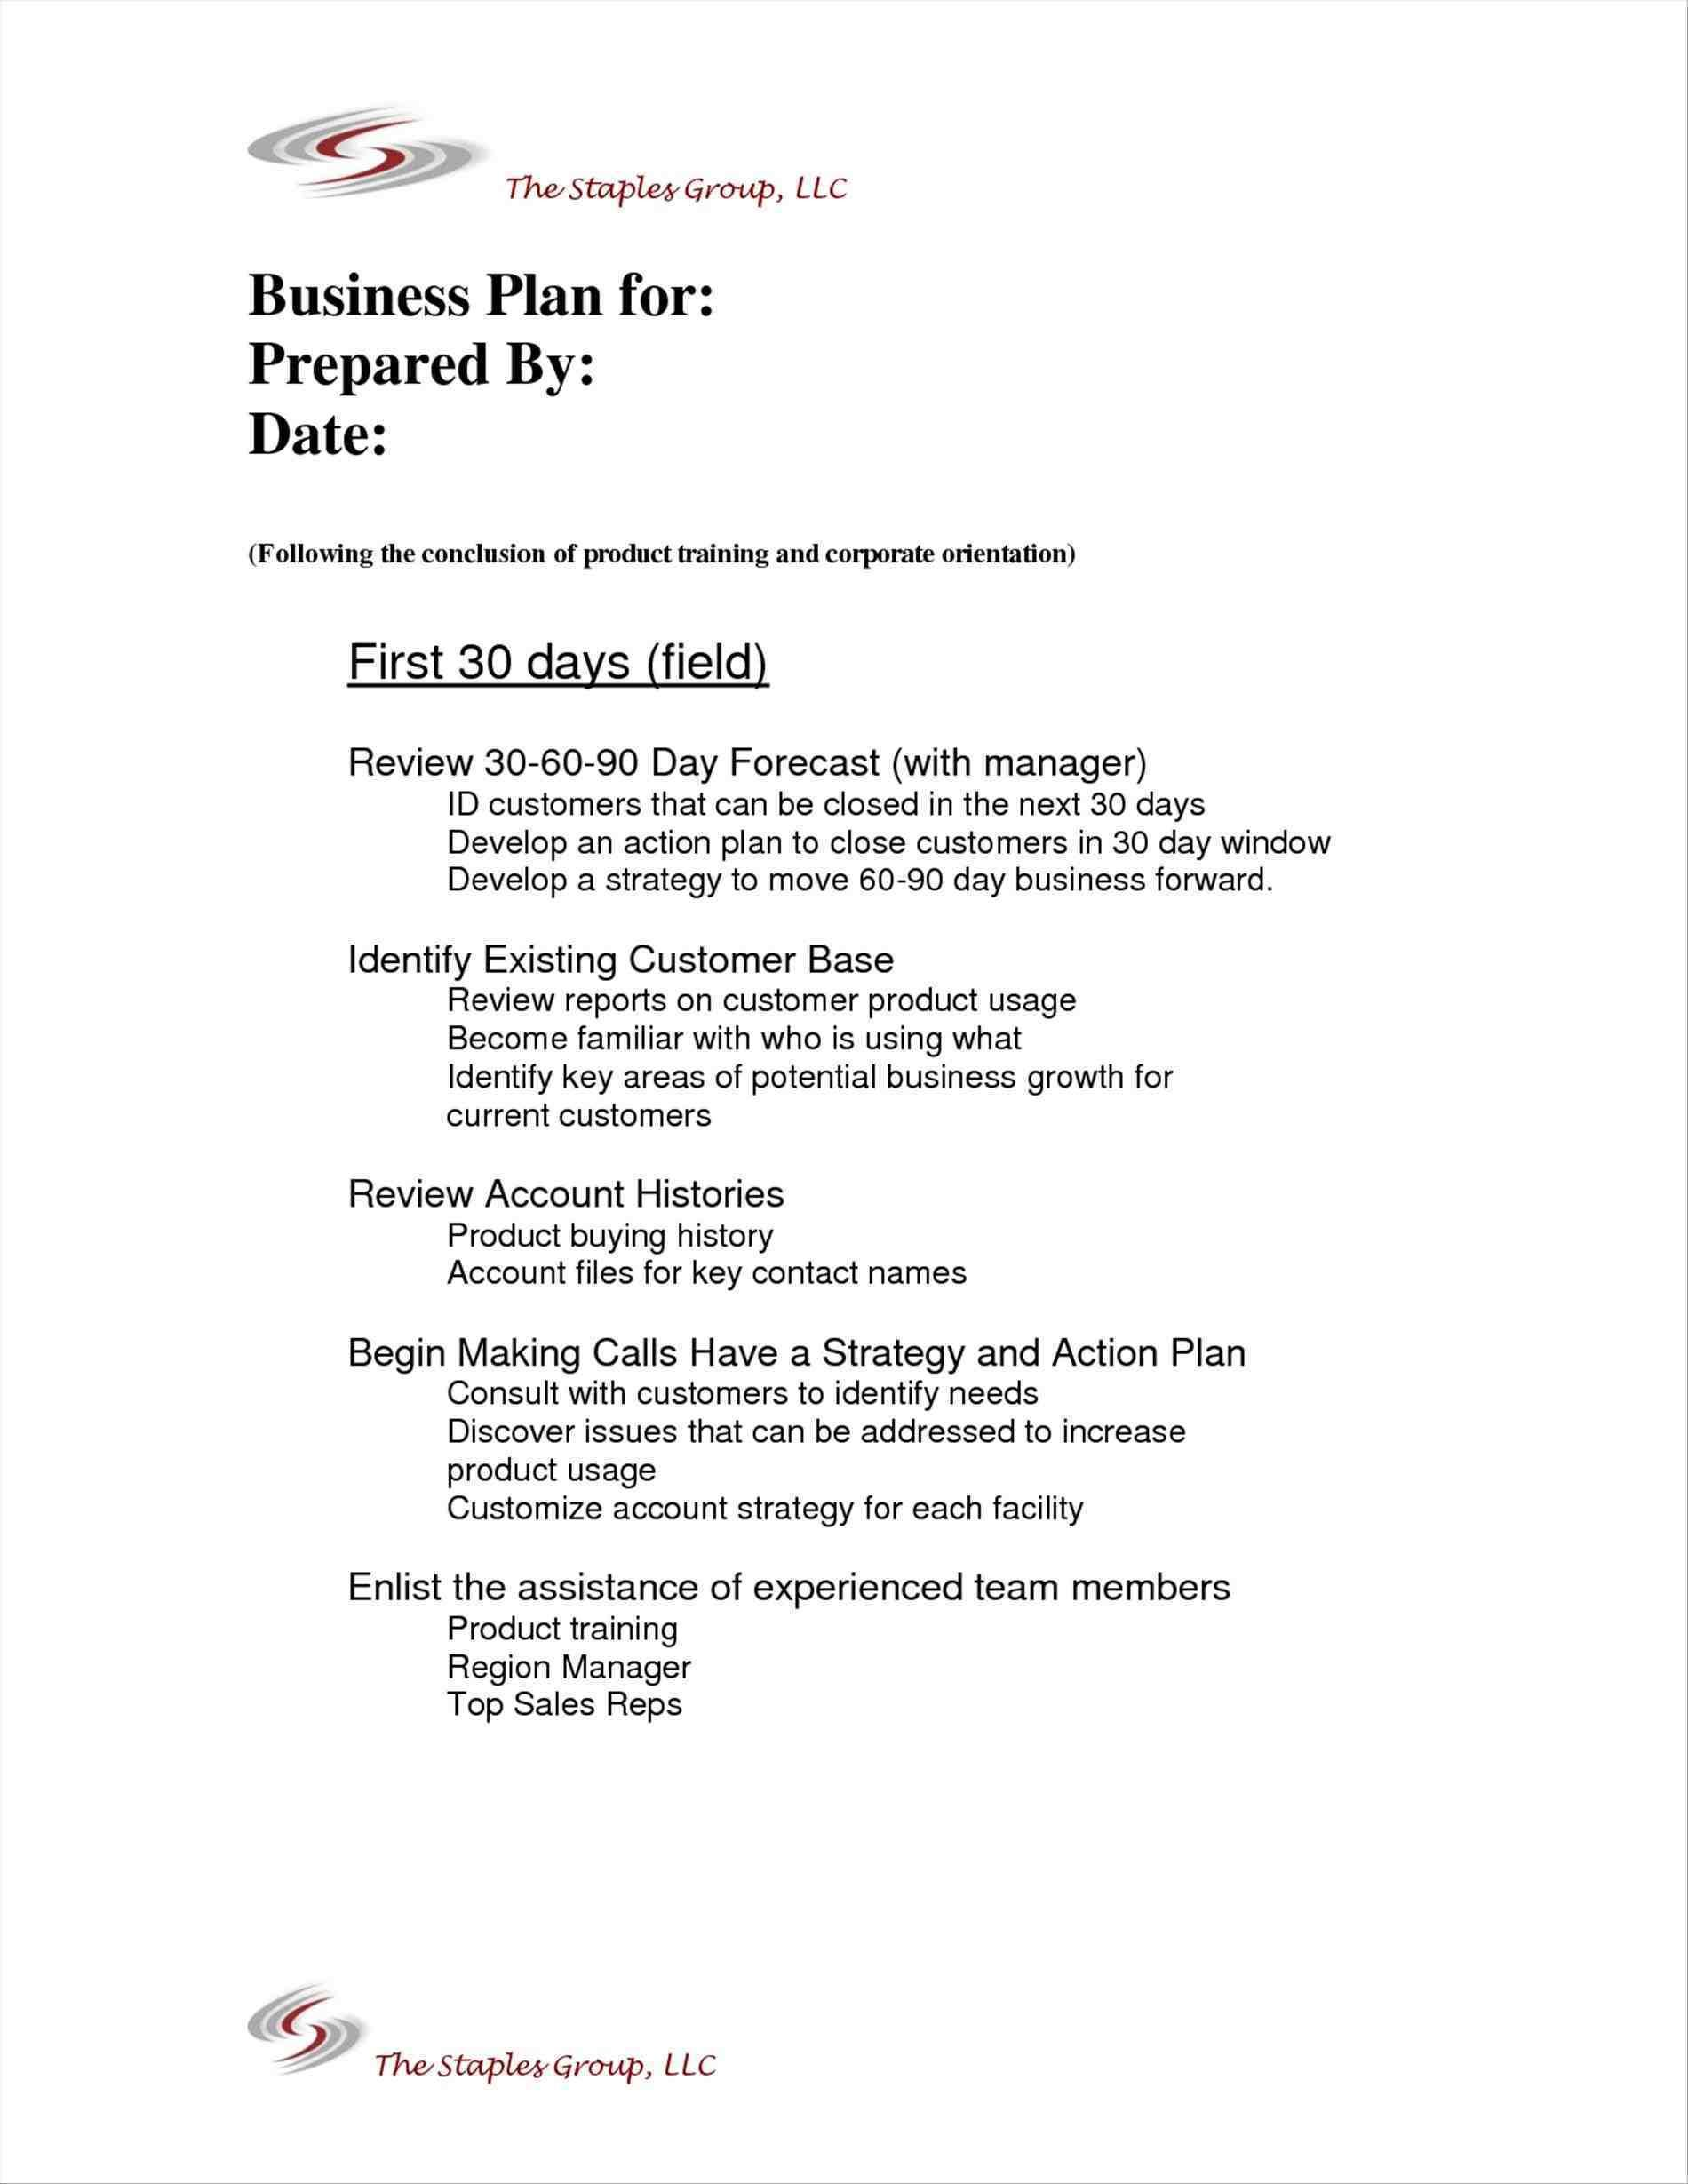 90 day business plan template for interview photos of interview 90 day business plan template for interview photos of interview examples day sales business plan template free for job success genxegg flashek Gallery